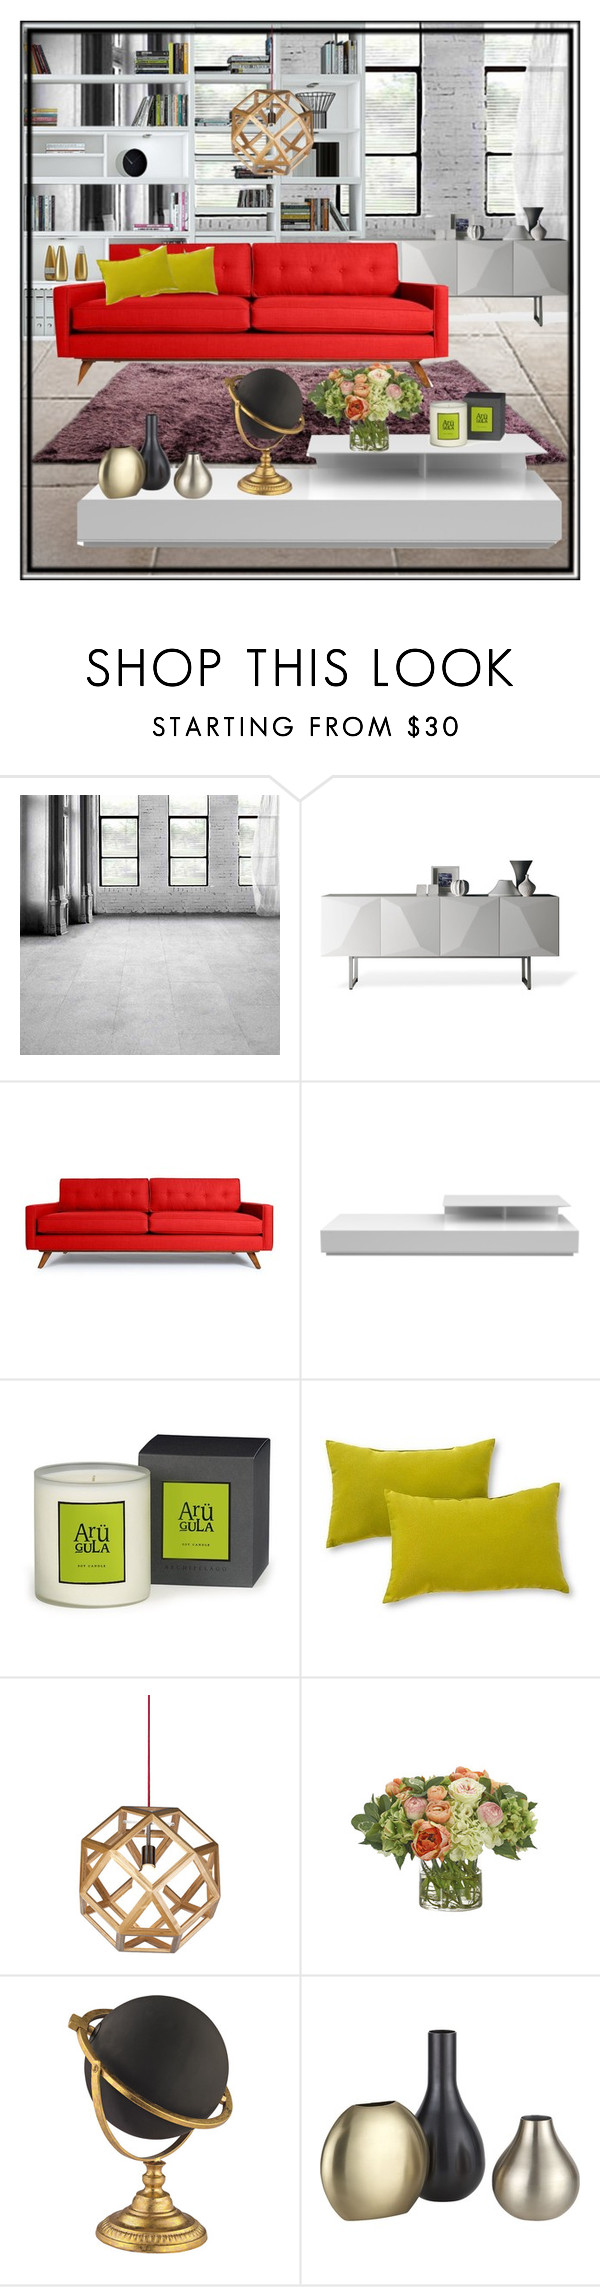 """""""Untitled #02"""" by aemi-chan ❤ liked on Polyvore featuring interior, interiors, interior design, home, home decor, interior decorating, Linfa Design, Thrive, Modloft and Greendale Home Fashions"""